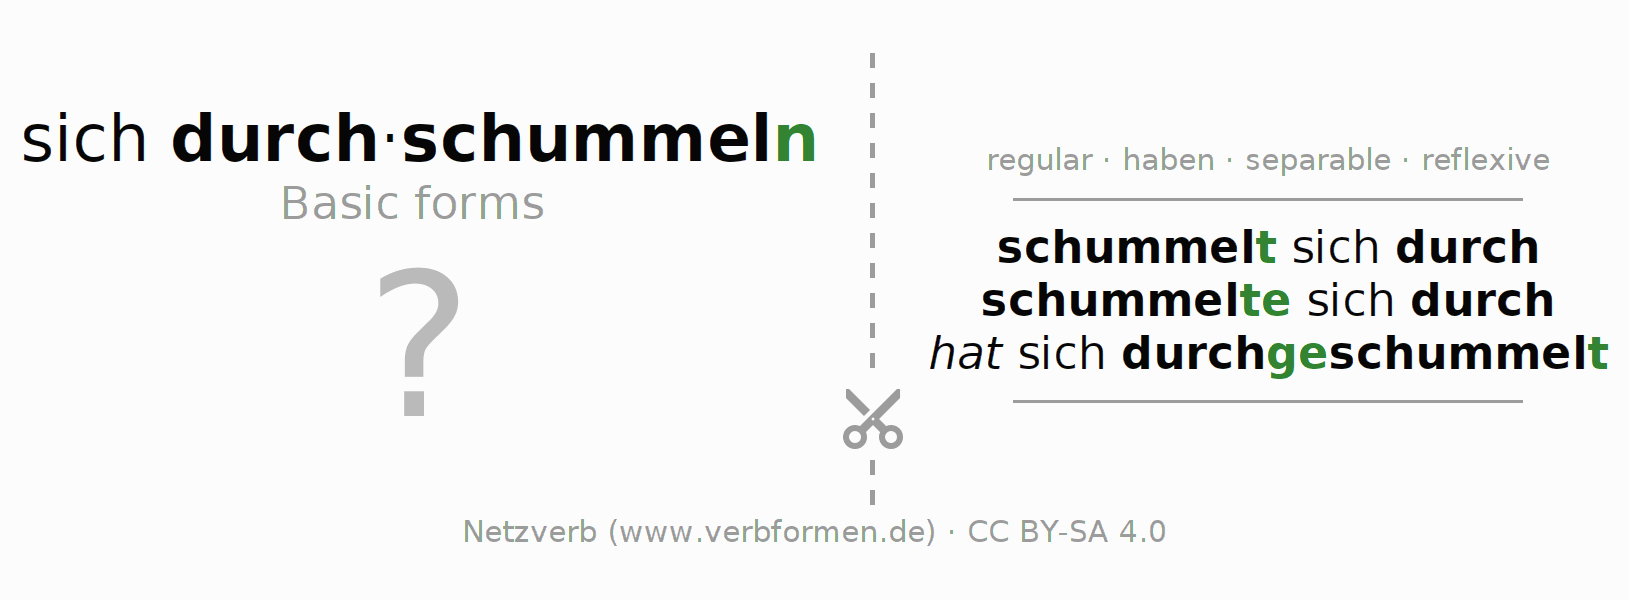 Flash cards for the conjugation of the verb sich durchschummeln